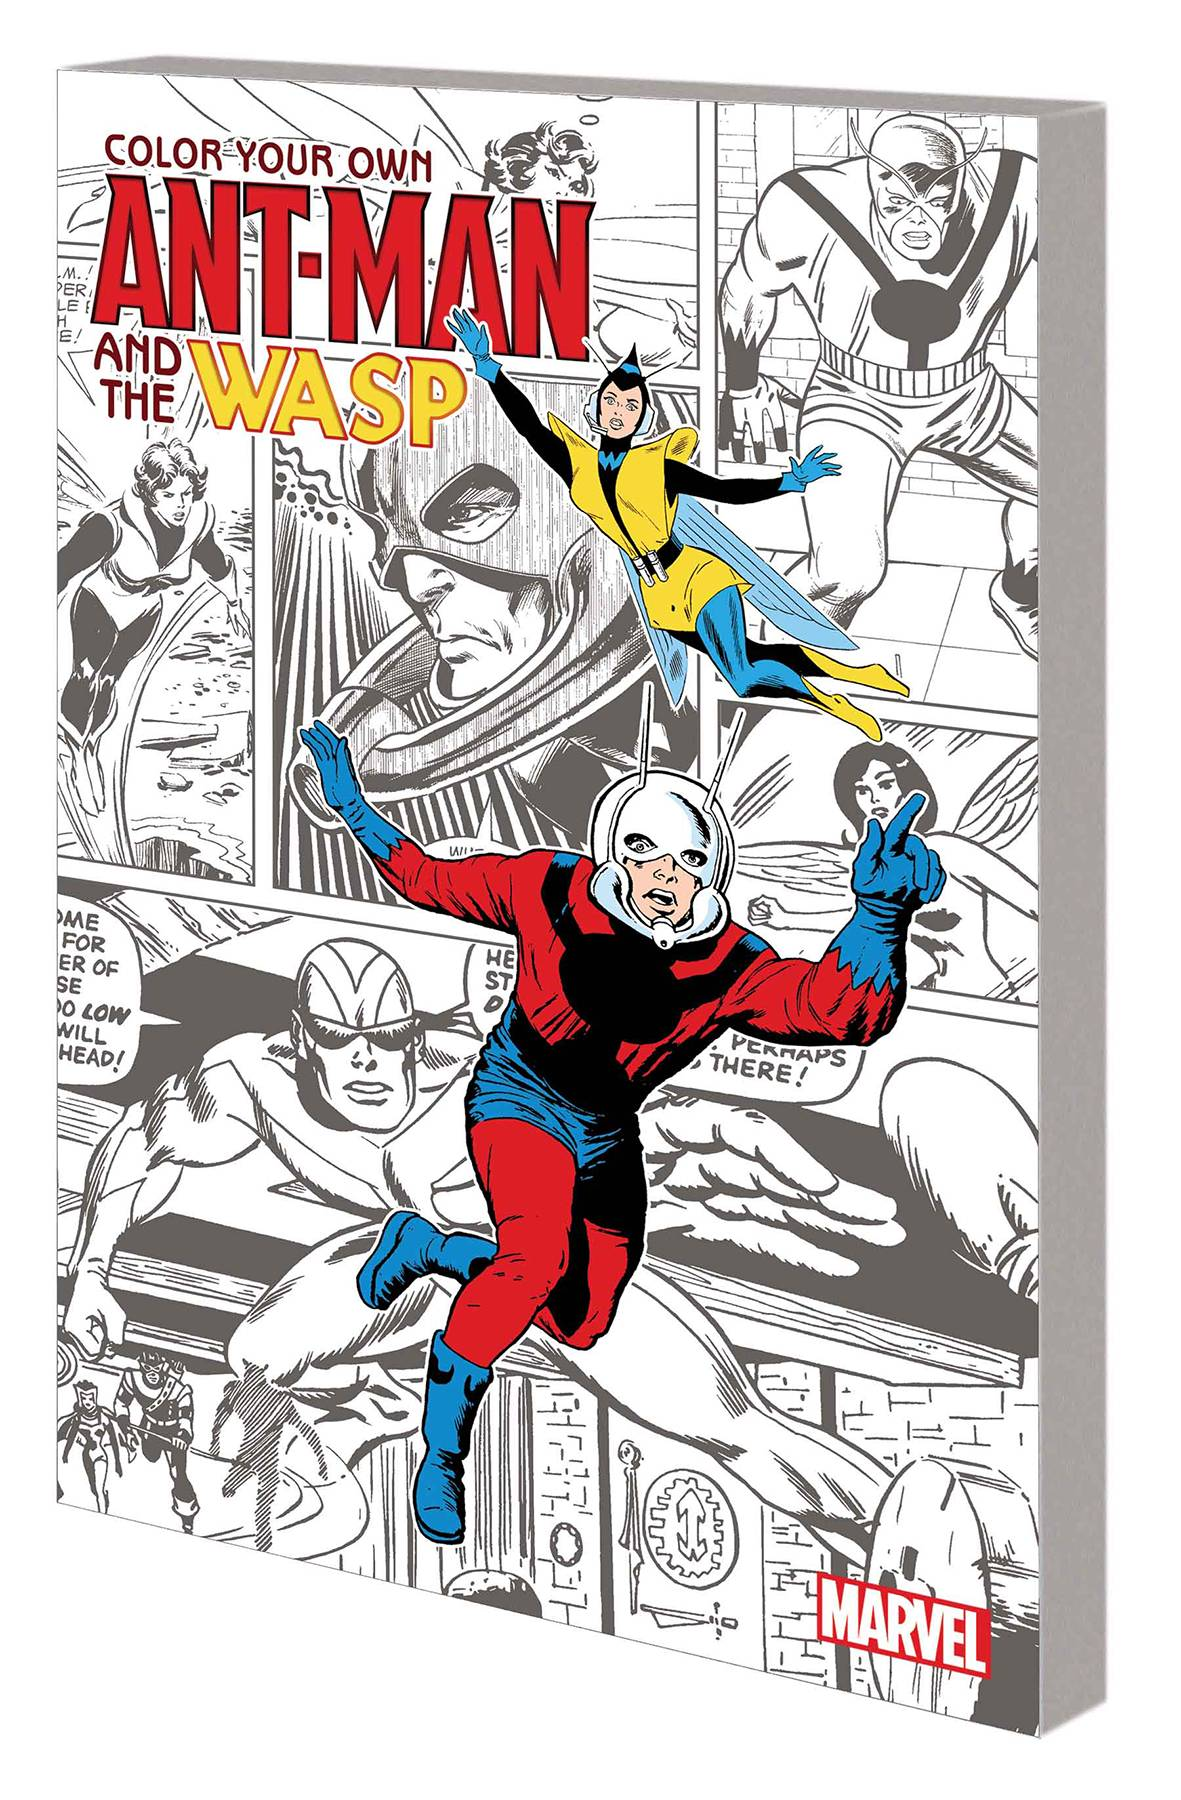 COLOR YOUR OWN ANT-MAN AND WASP (COLORING BOOK) TP